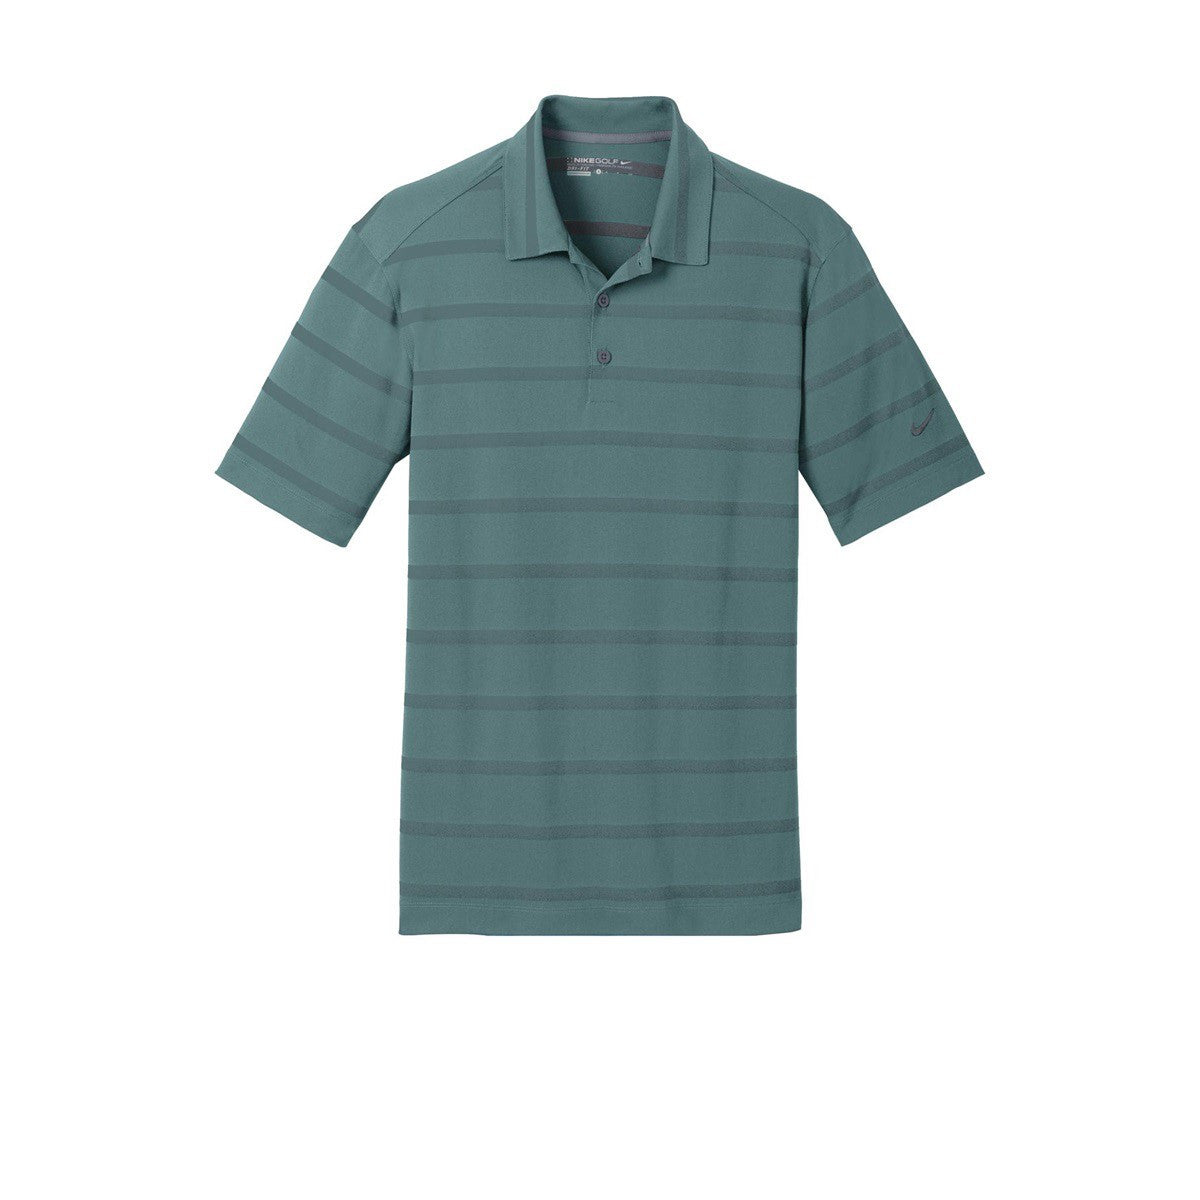 Nike Golf Dri-FIT Fade Stripe Polo